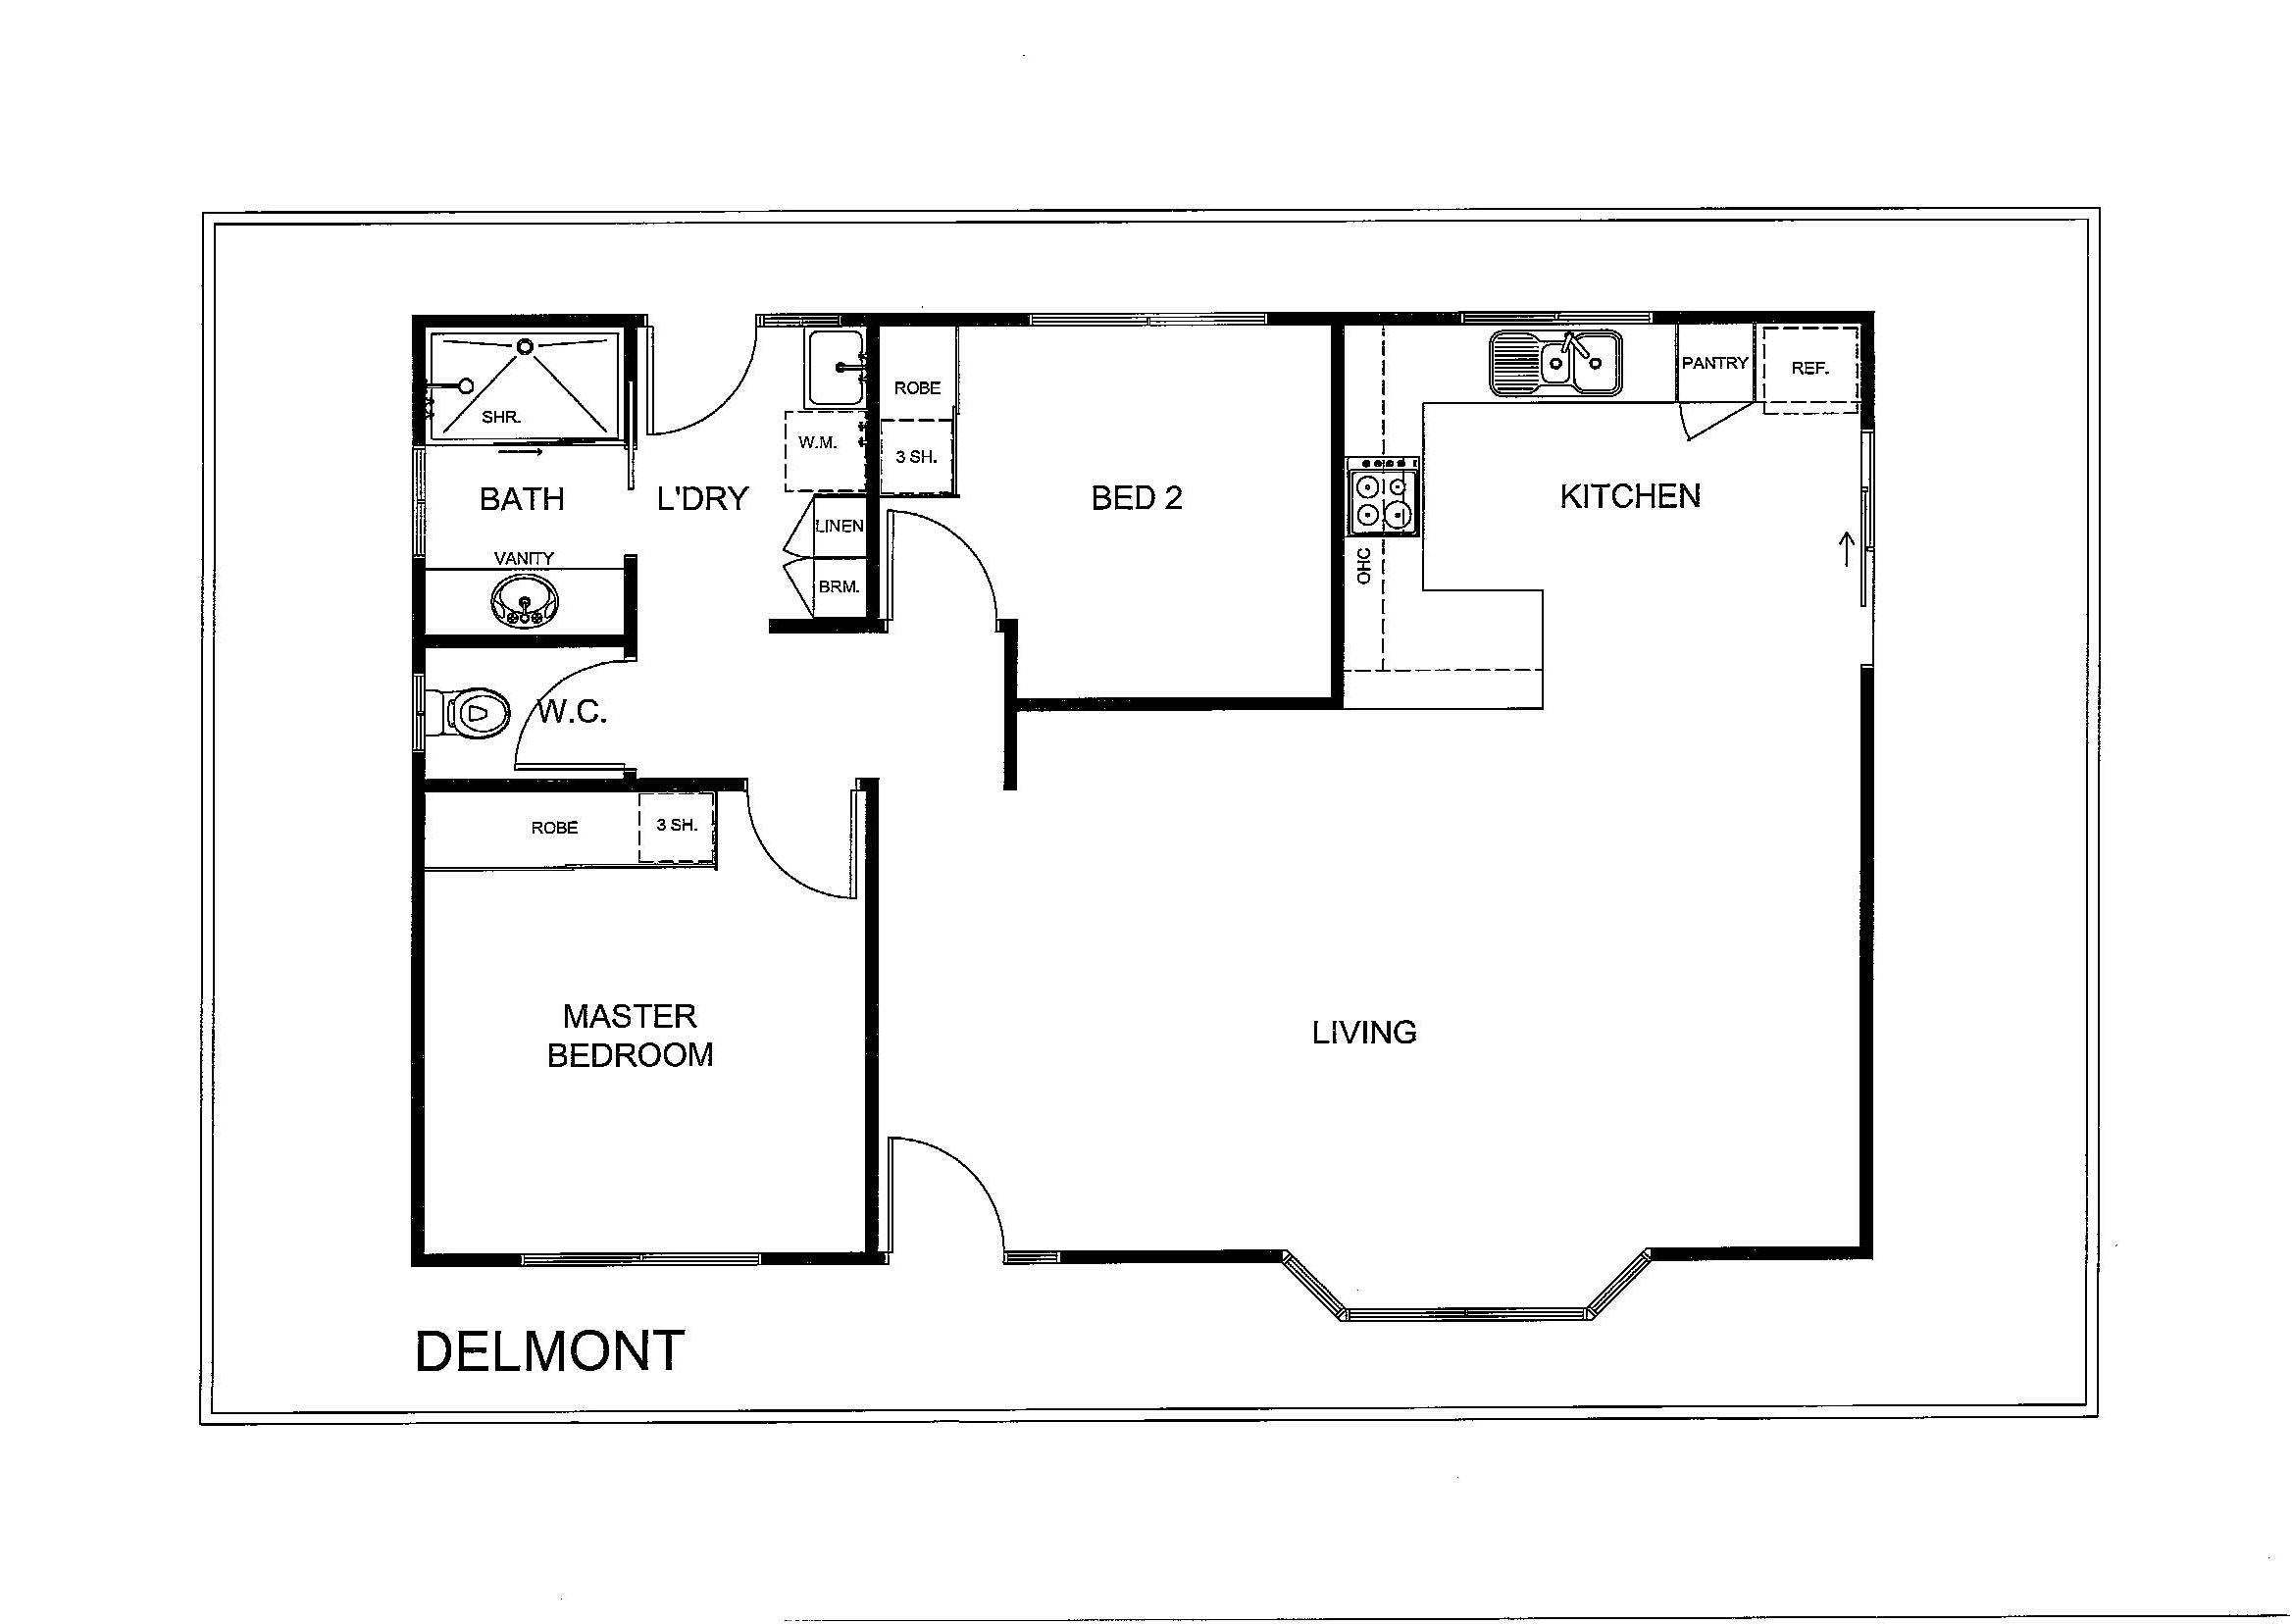 Delandra Additional Plans - DELMONT